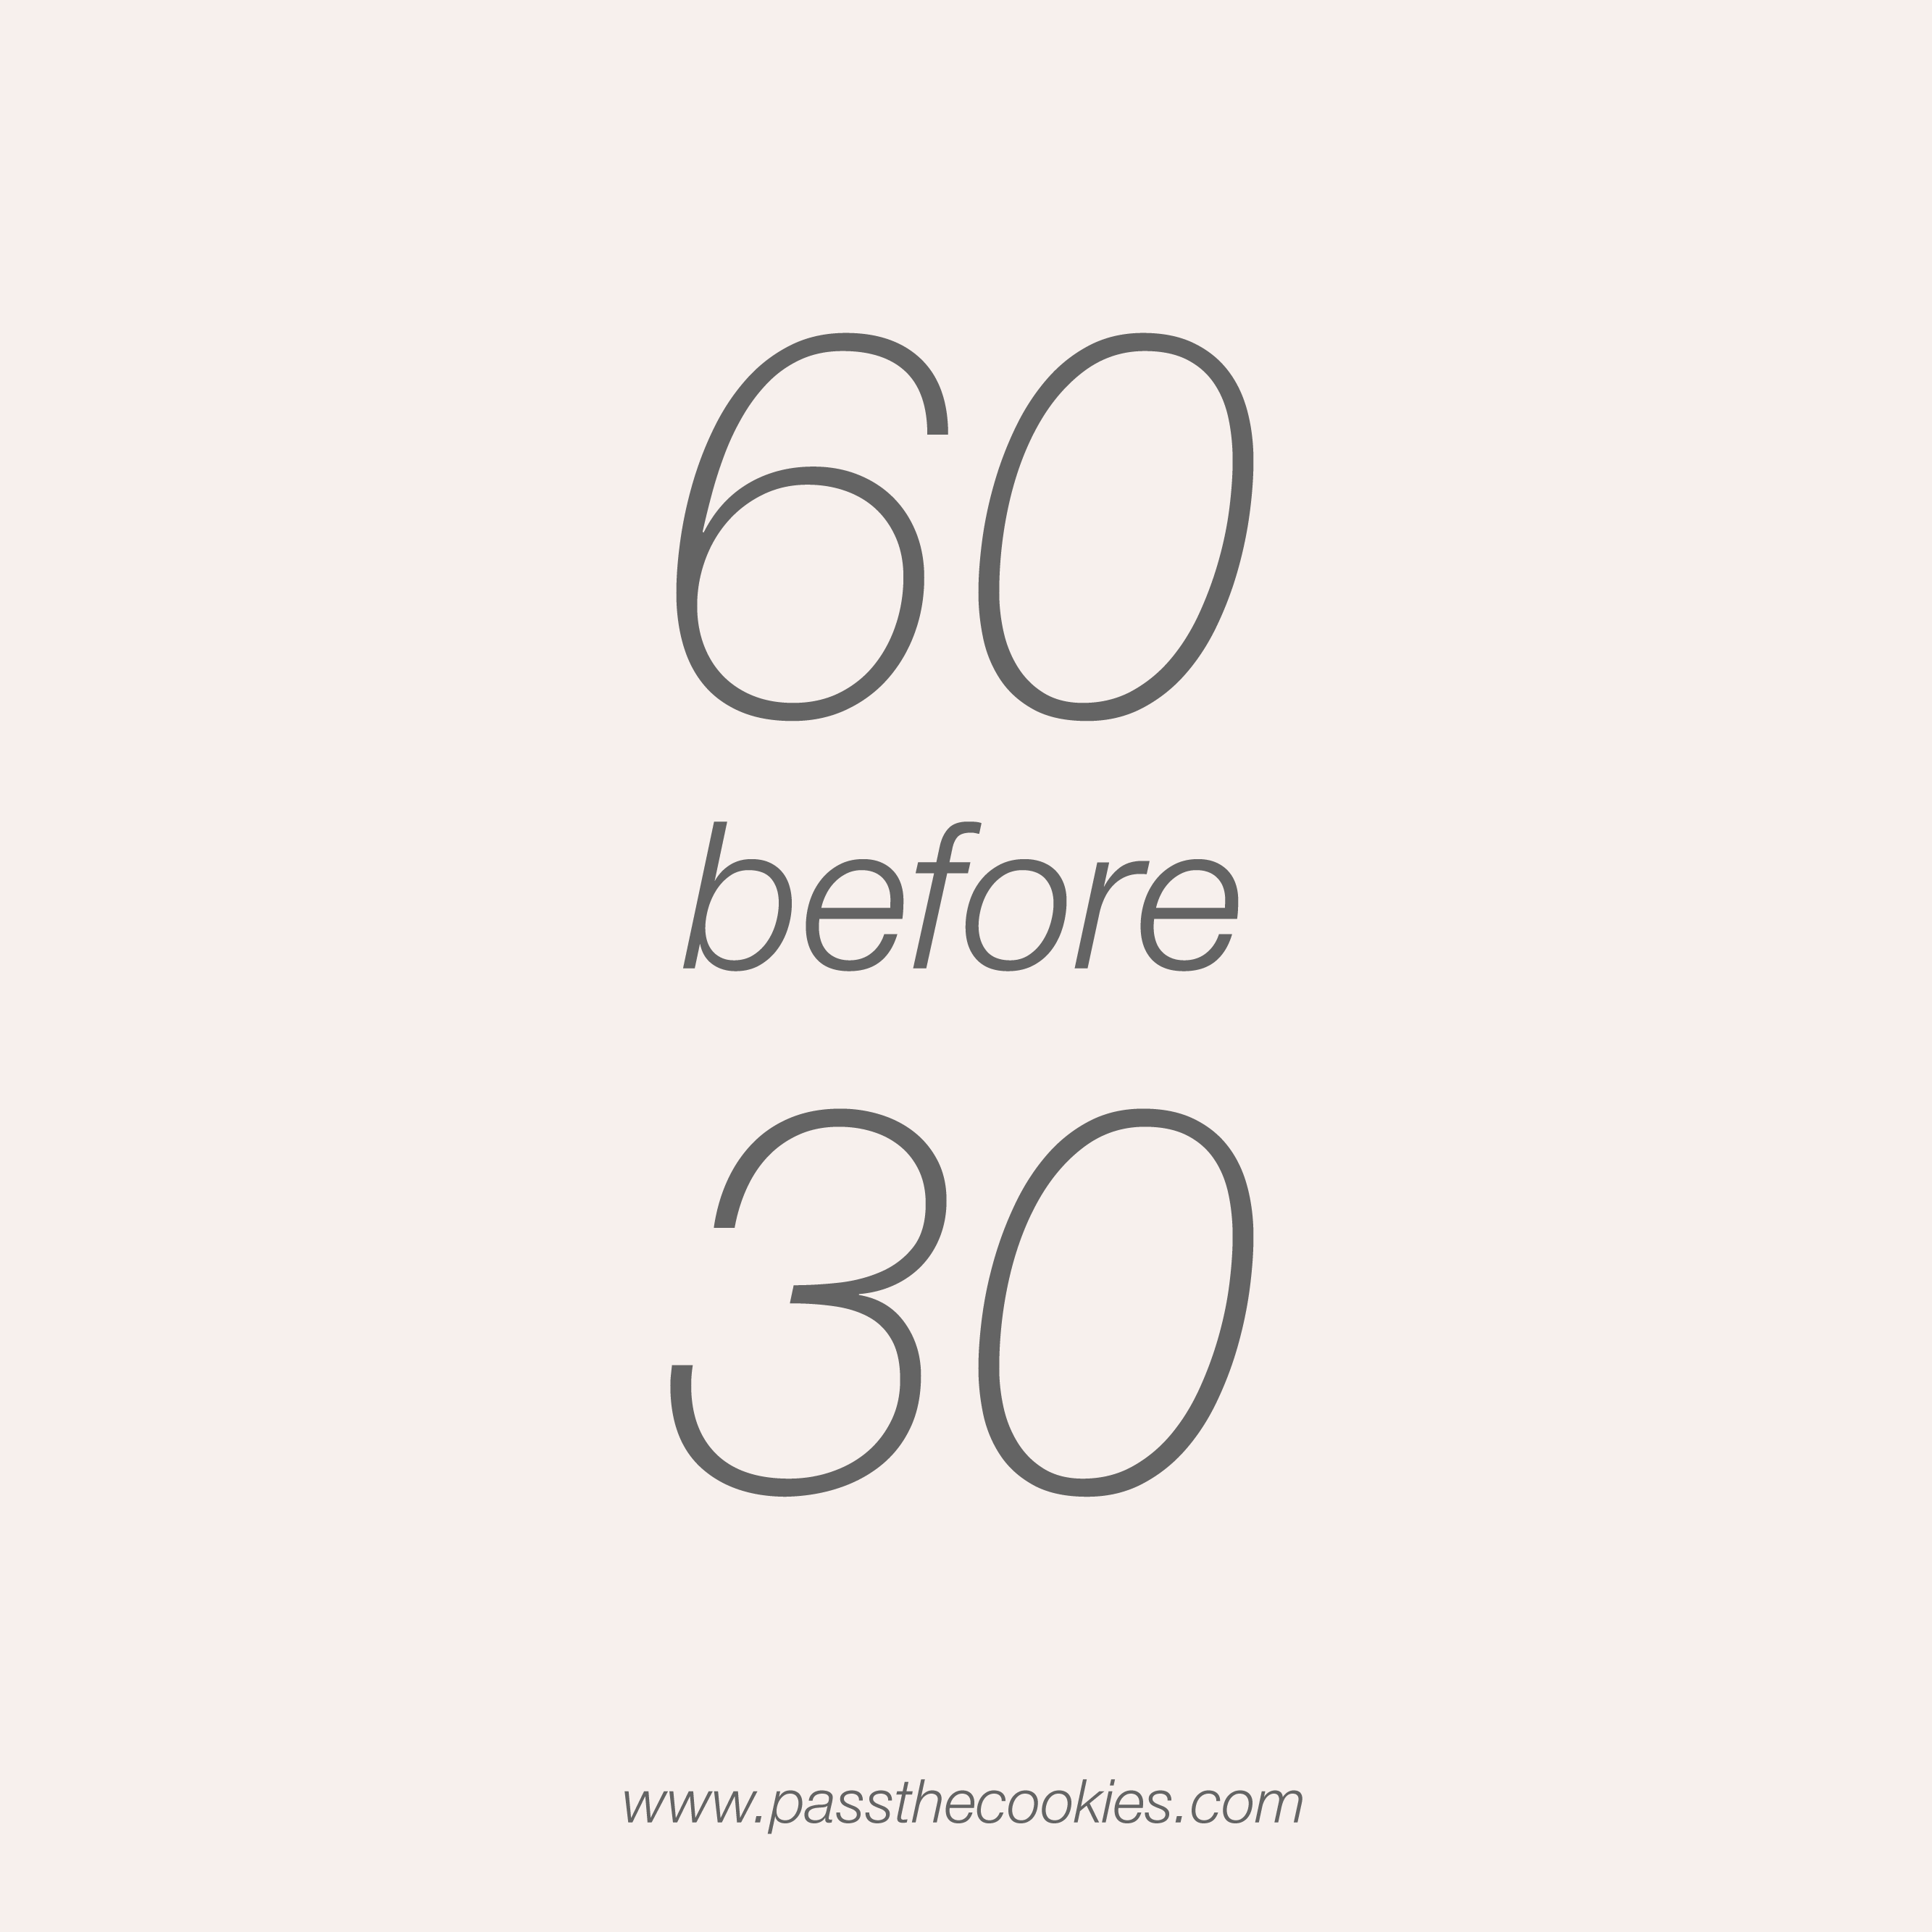 60 before 30 update | Pass the Cookies | www.passthecookies.com